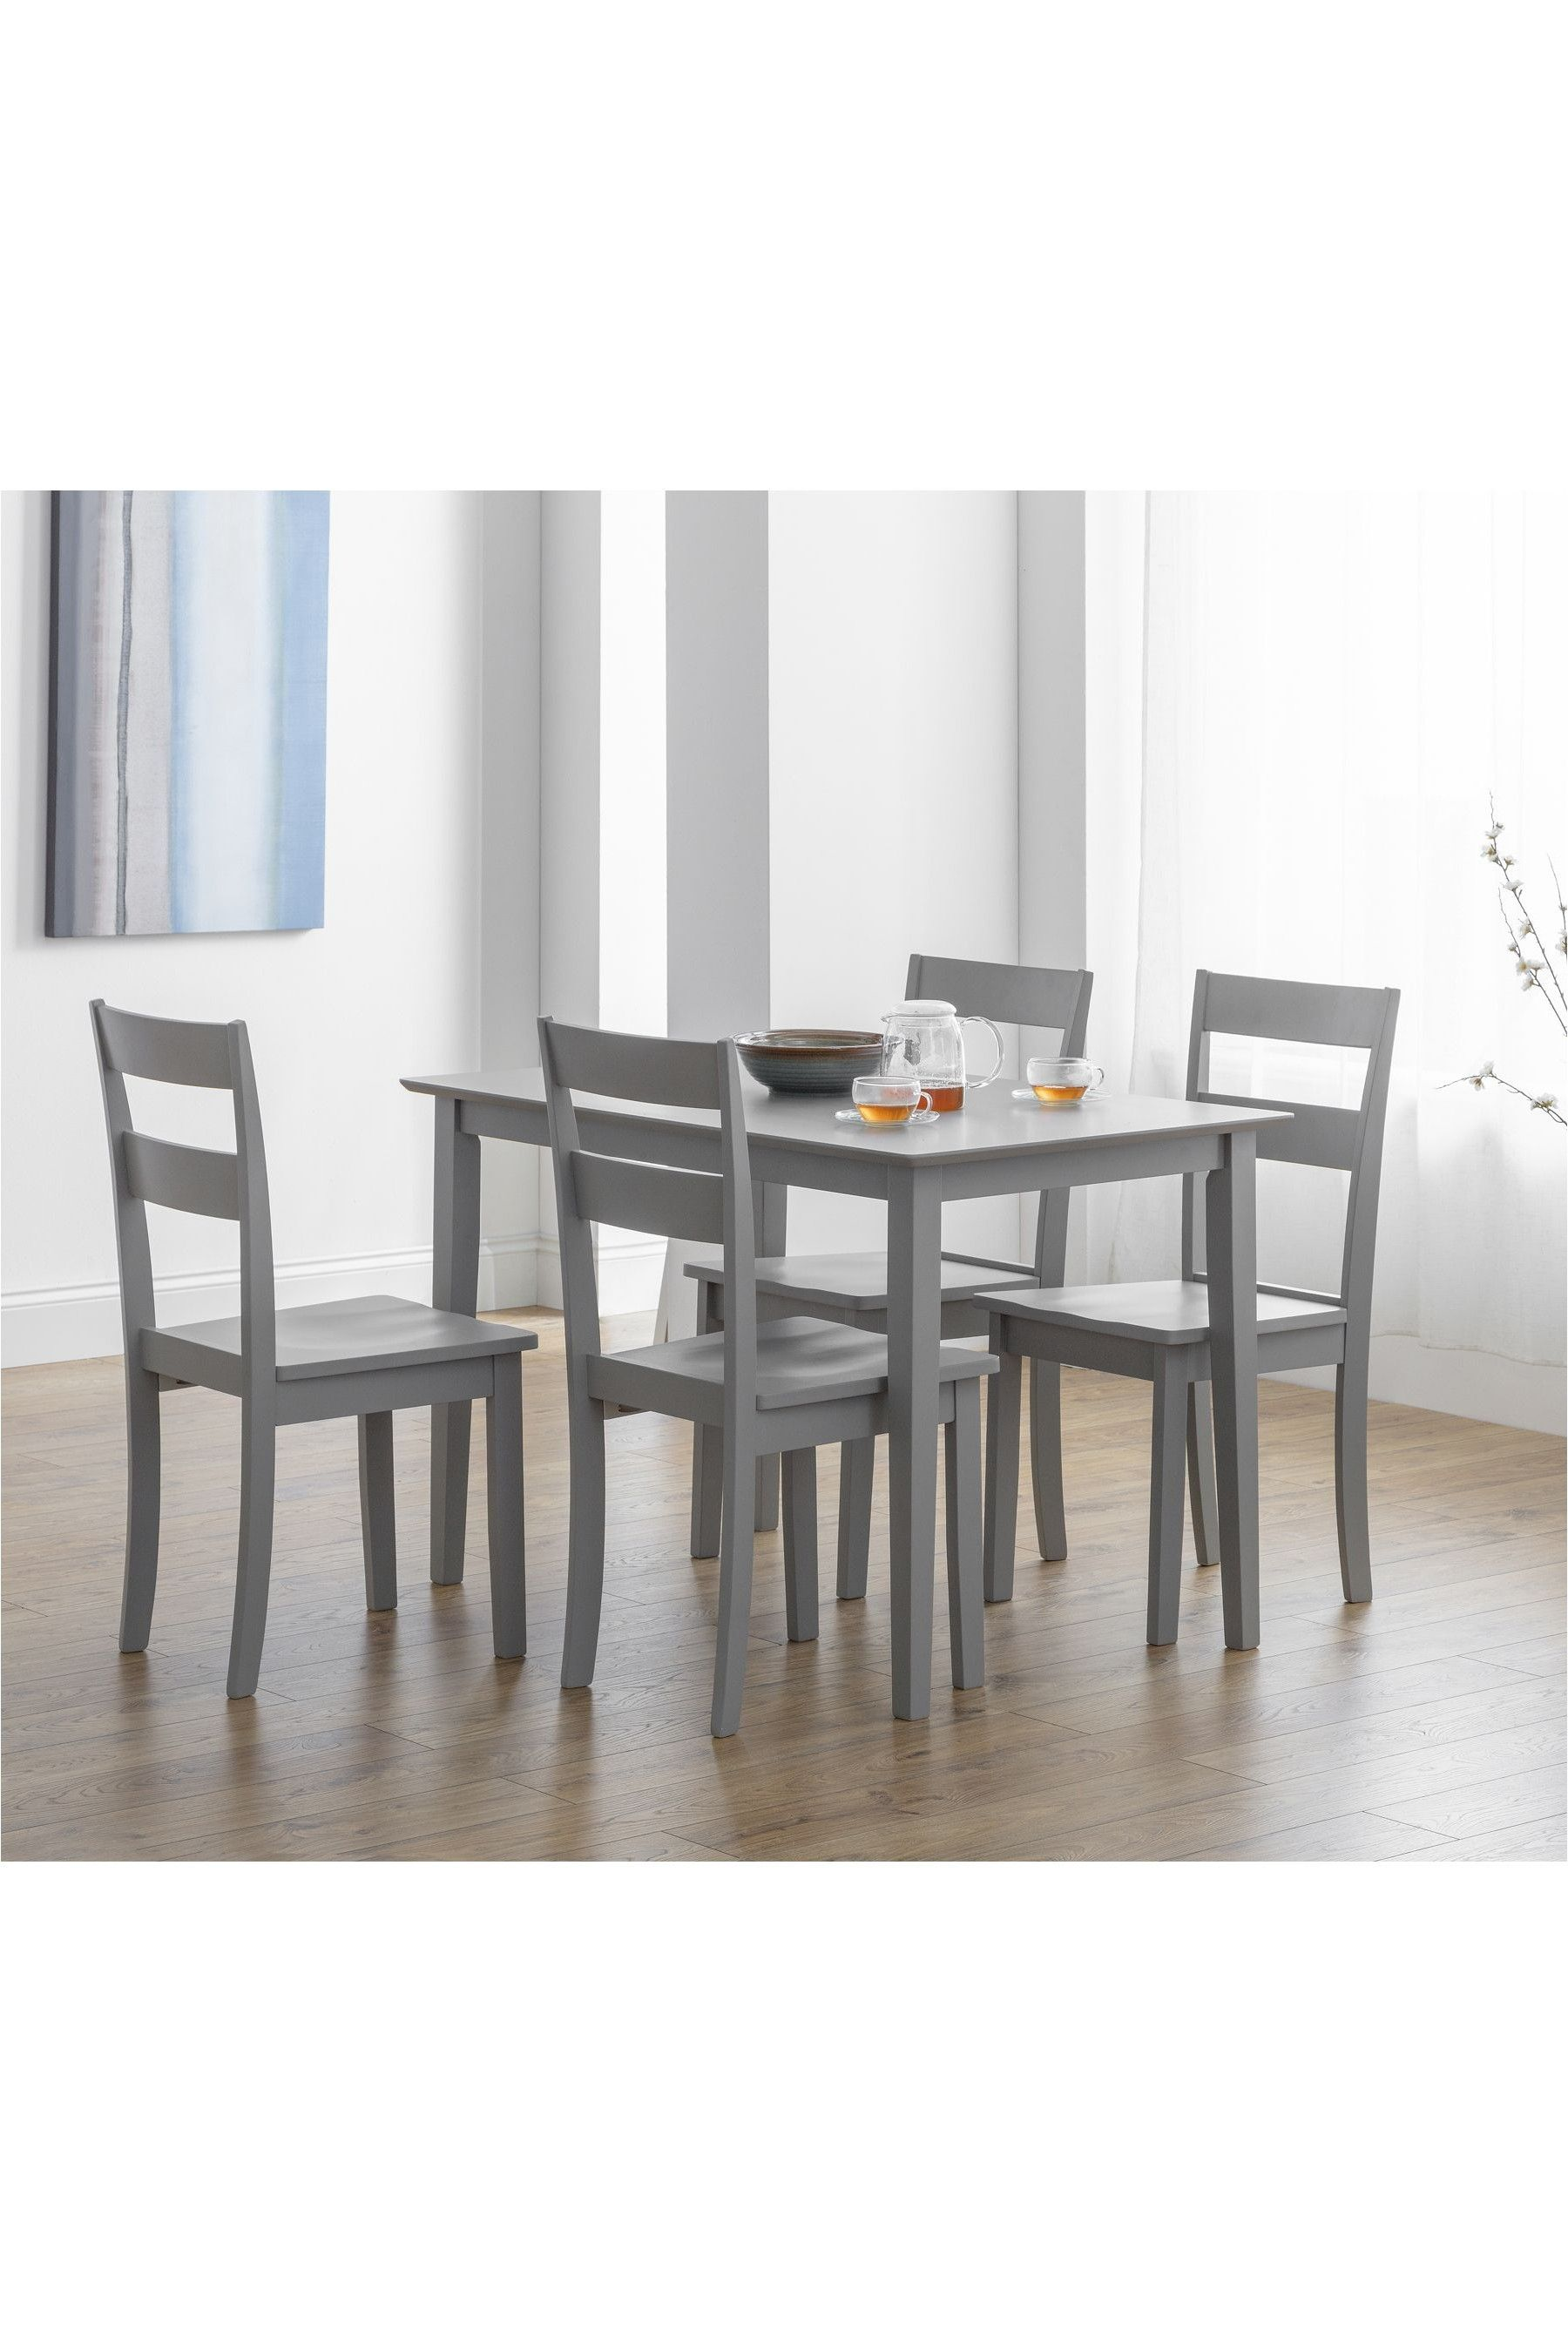 Kobe 4 Seater Dining Table Set By Julian Bowen 4 Seater Dining